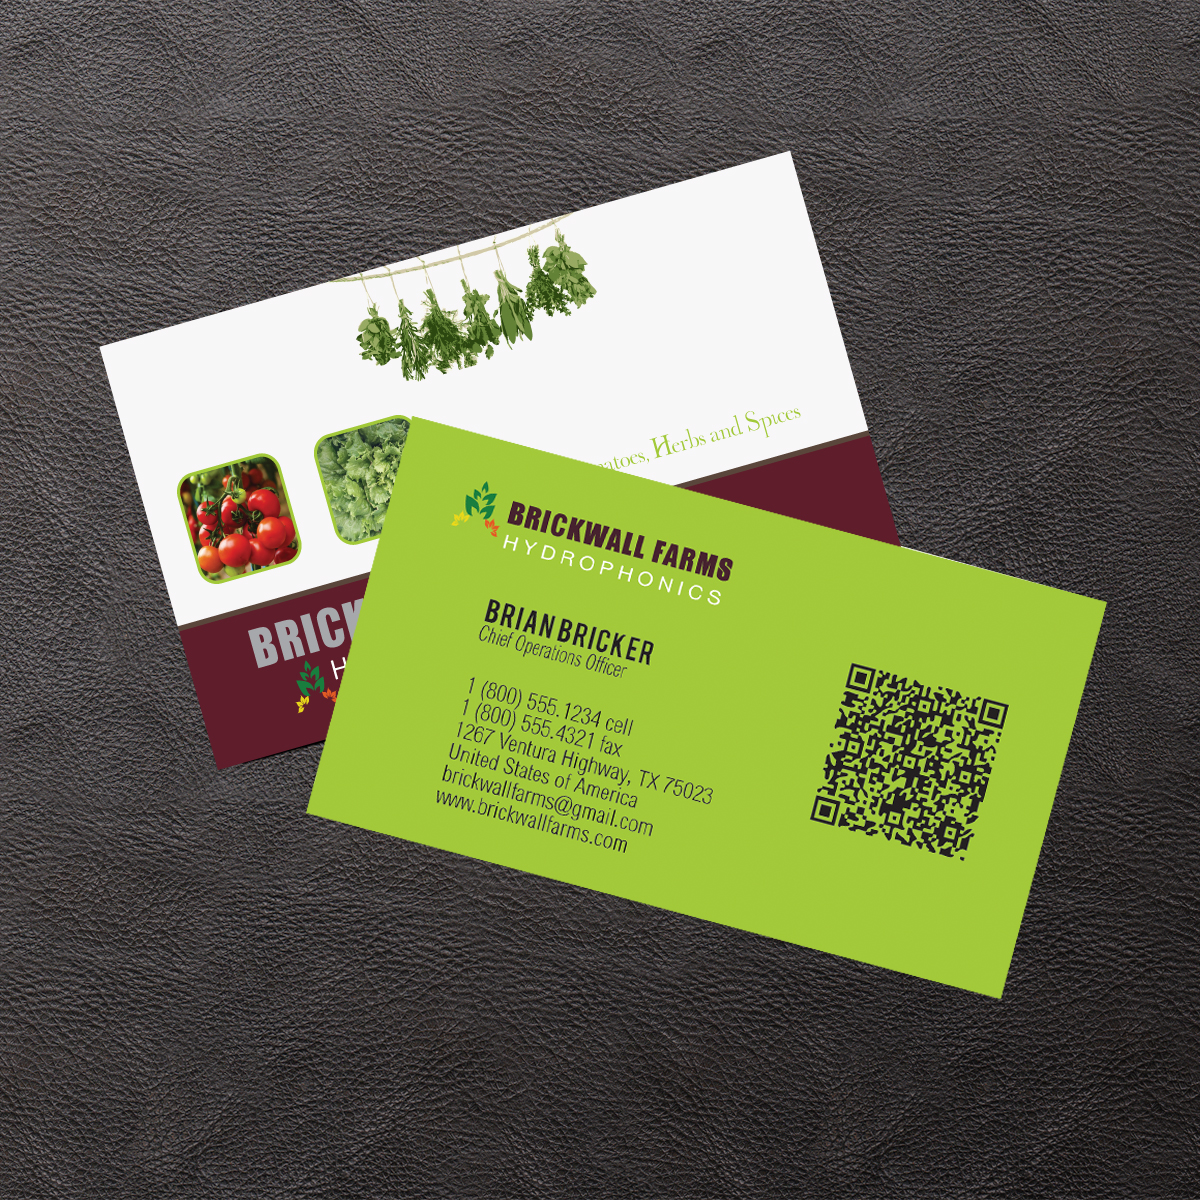 Farm business card design for a company by venus l penaflor business card design by venus l penaflor for this project design 3426680 colourmoves